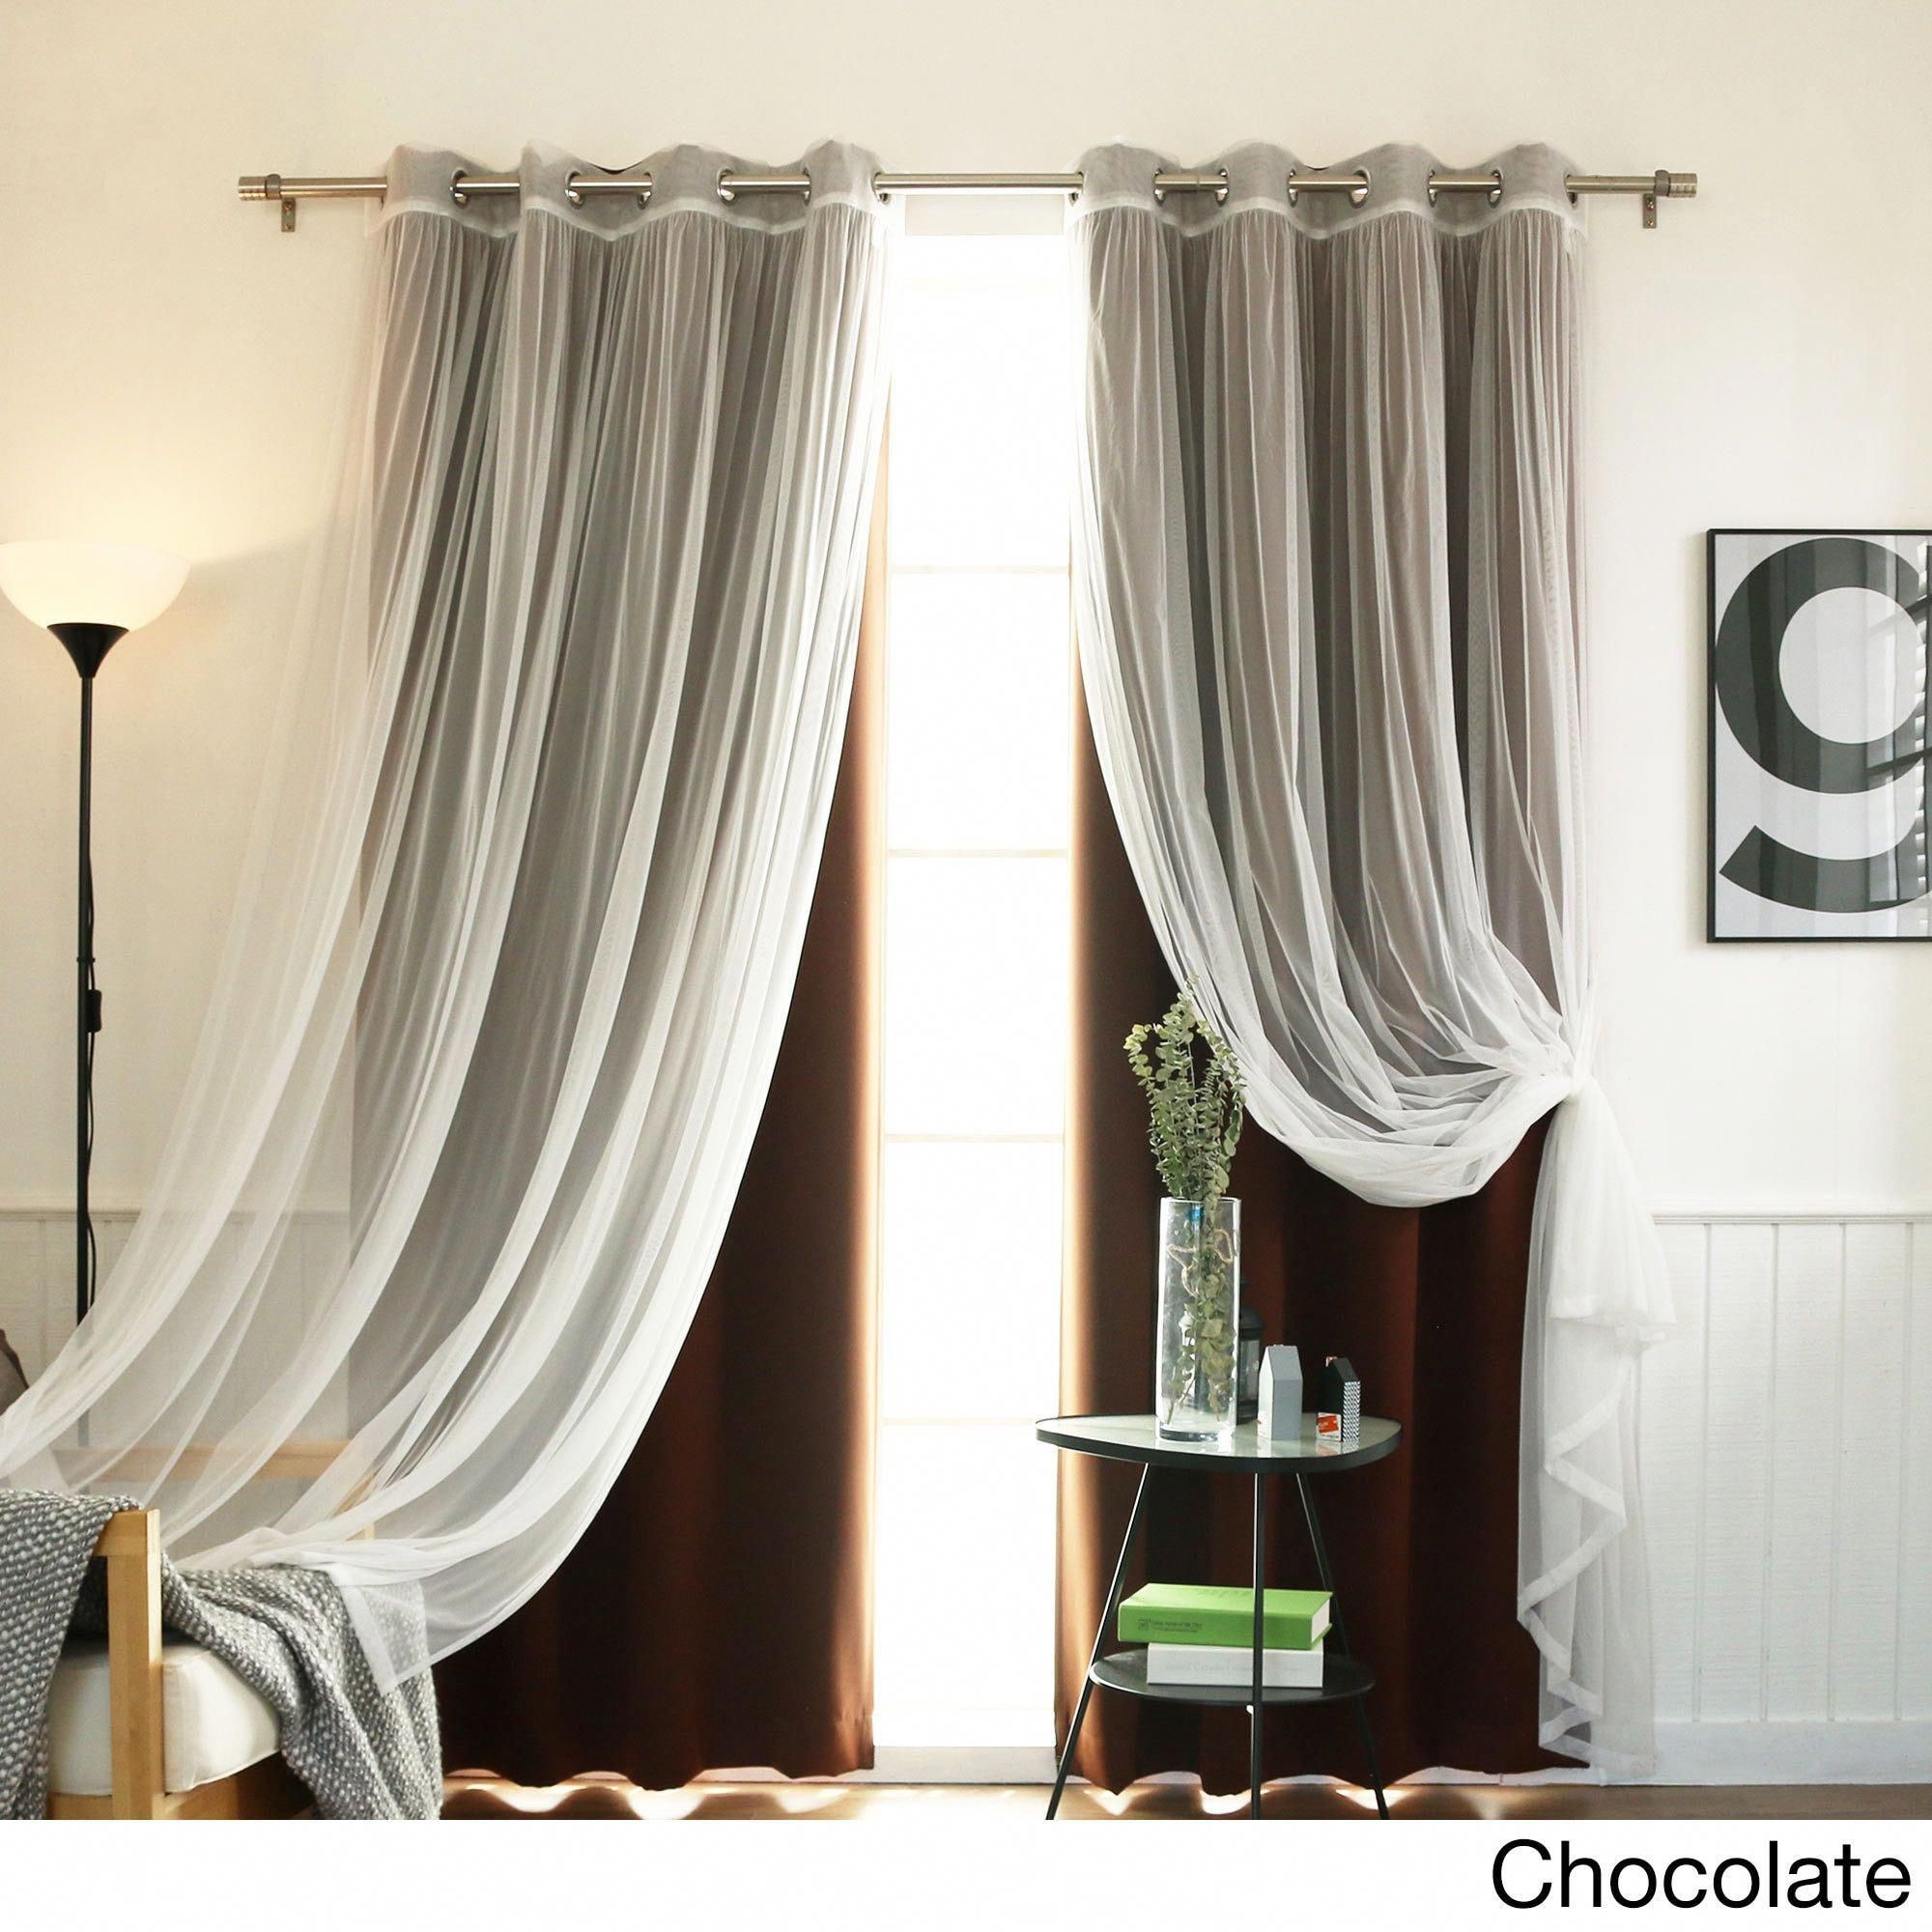 Aurora Home Mix Match Curtains Blackout And Tulle Lace Sheer